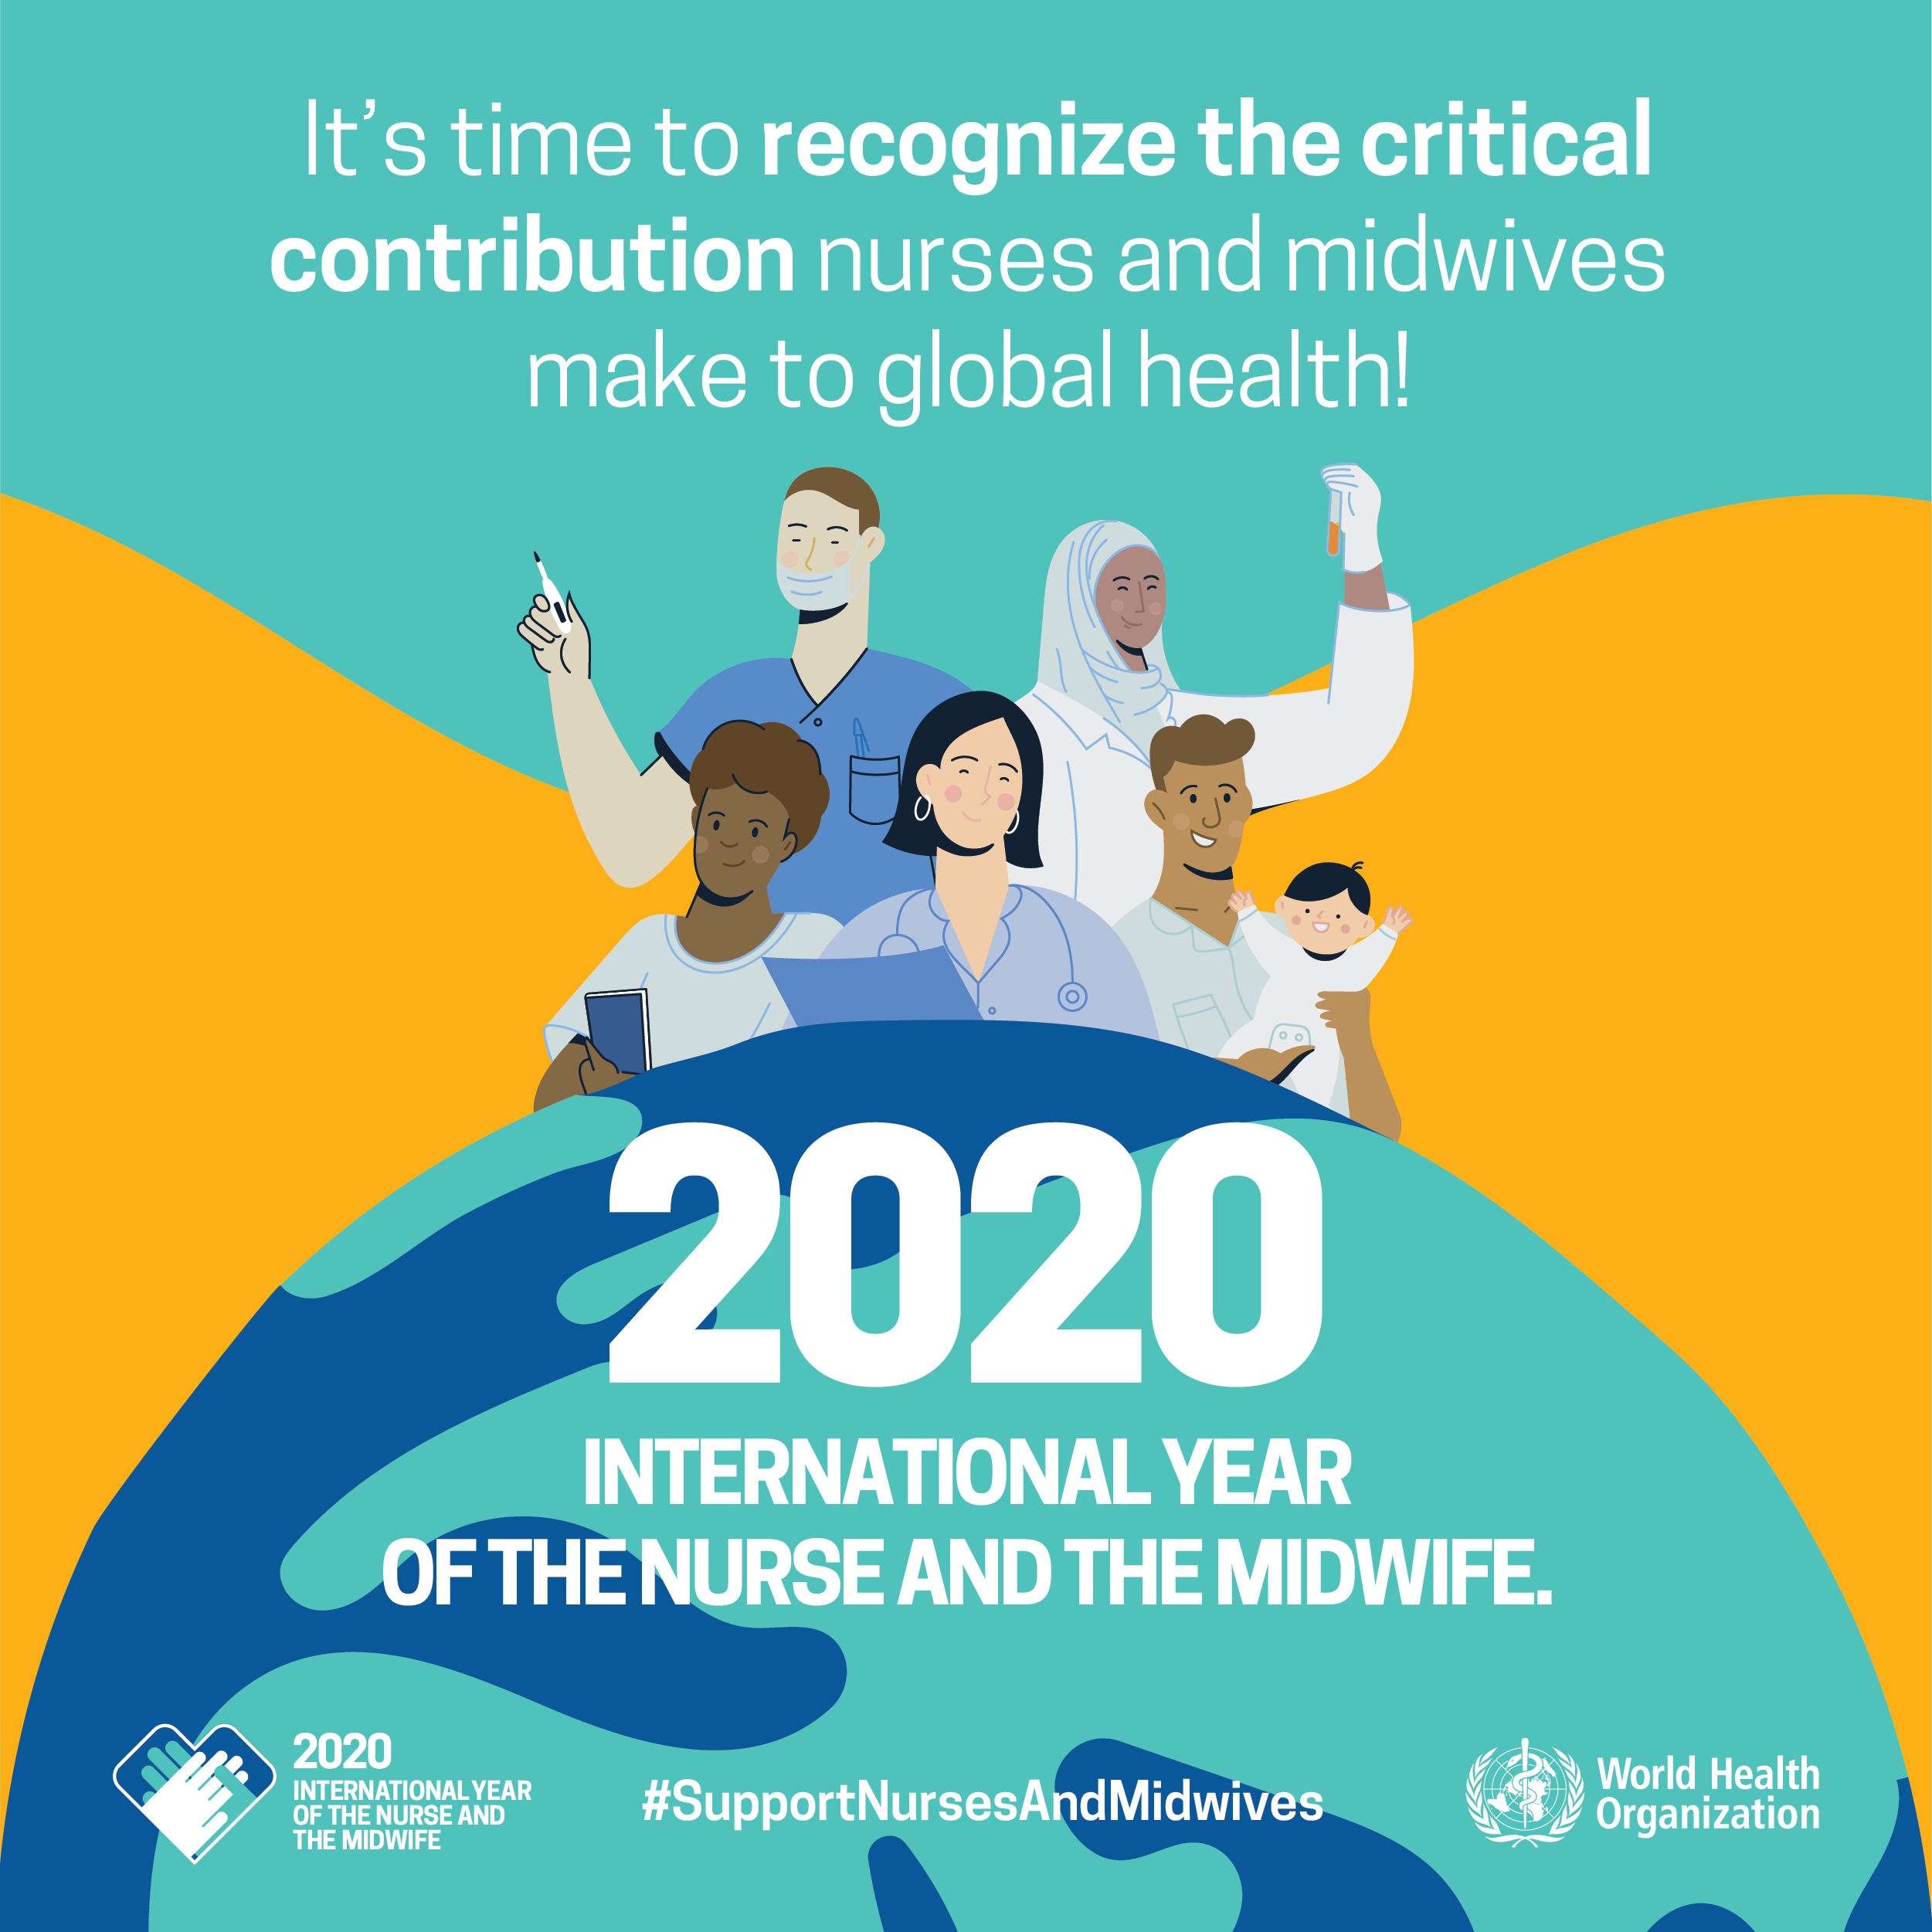 International Year of the Nurse and Midwife 2020